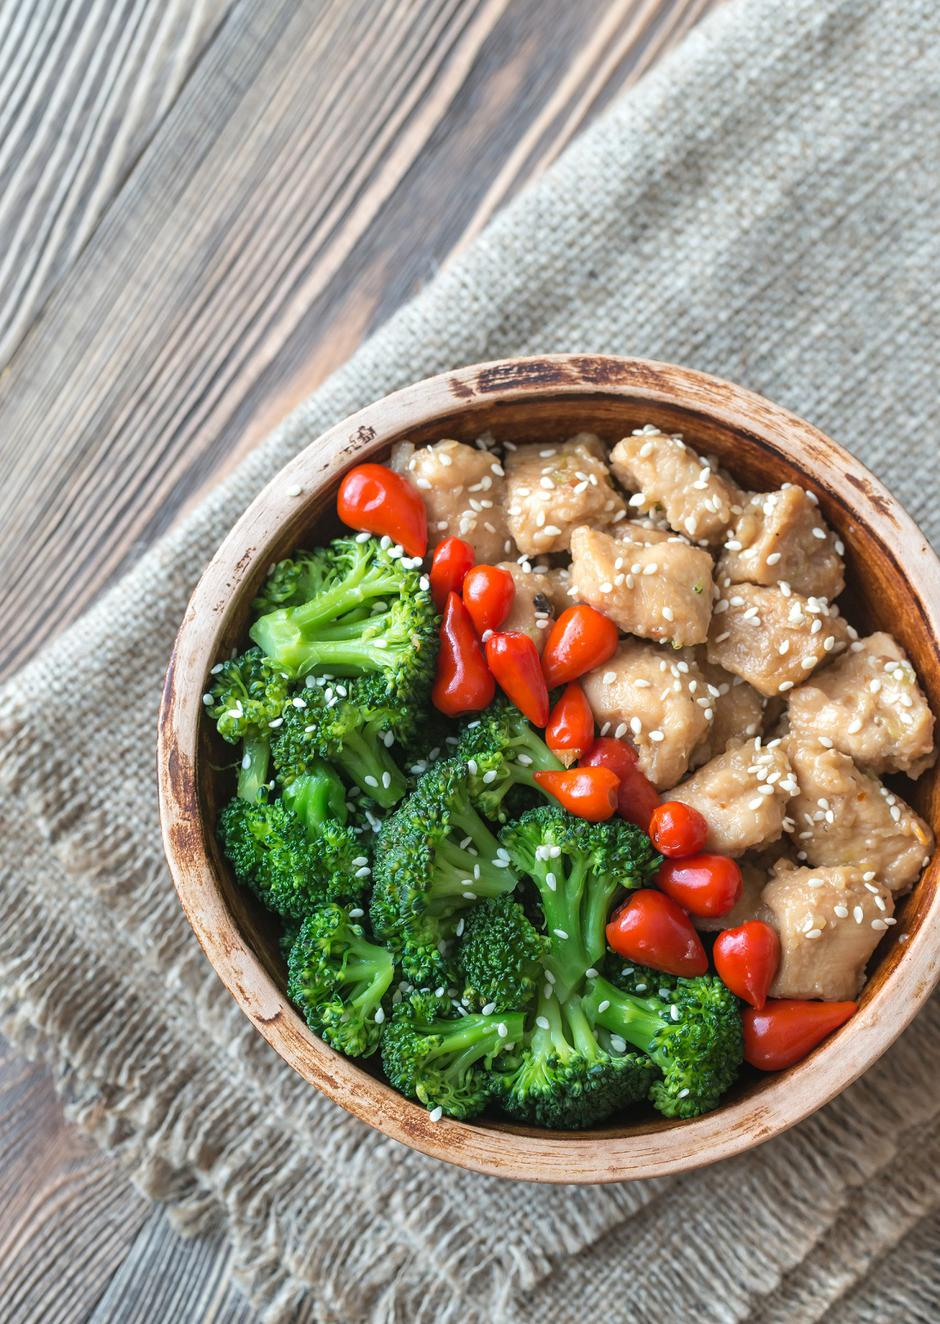 Bowl of broccoli and chicken stir-fry | Autor: Oleksandr Prokopenko